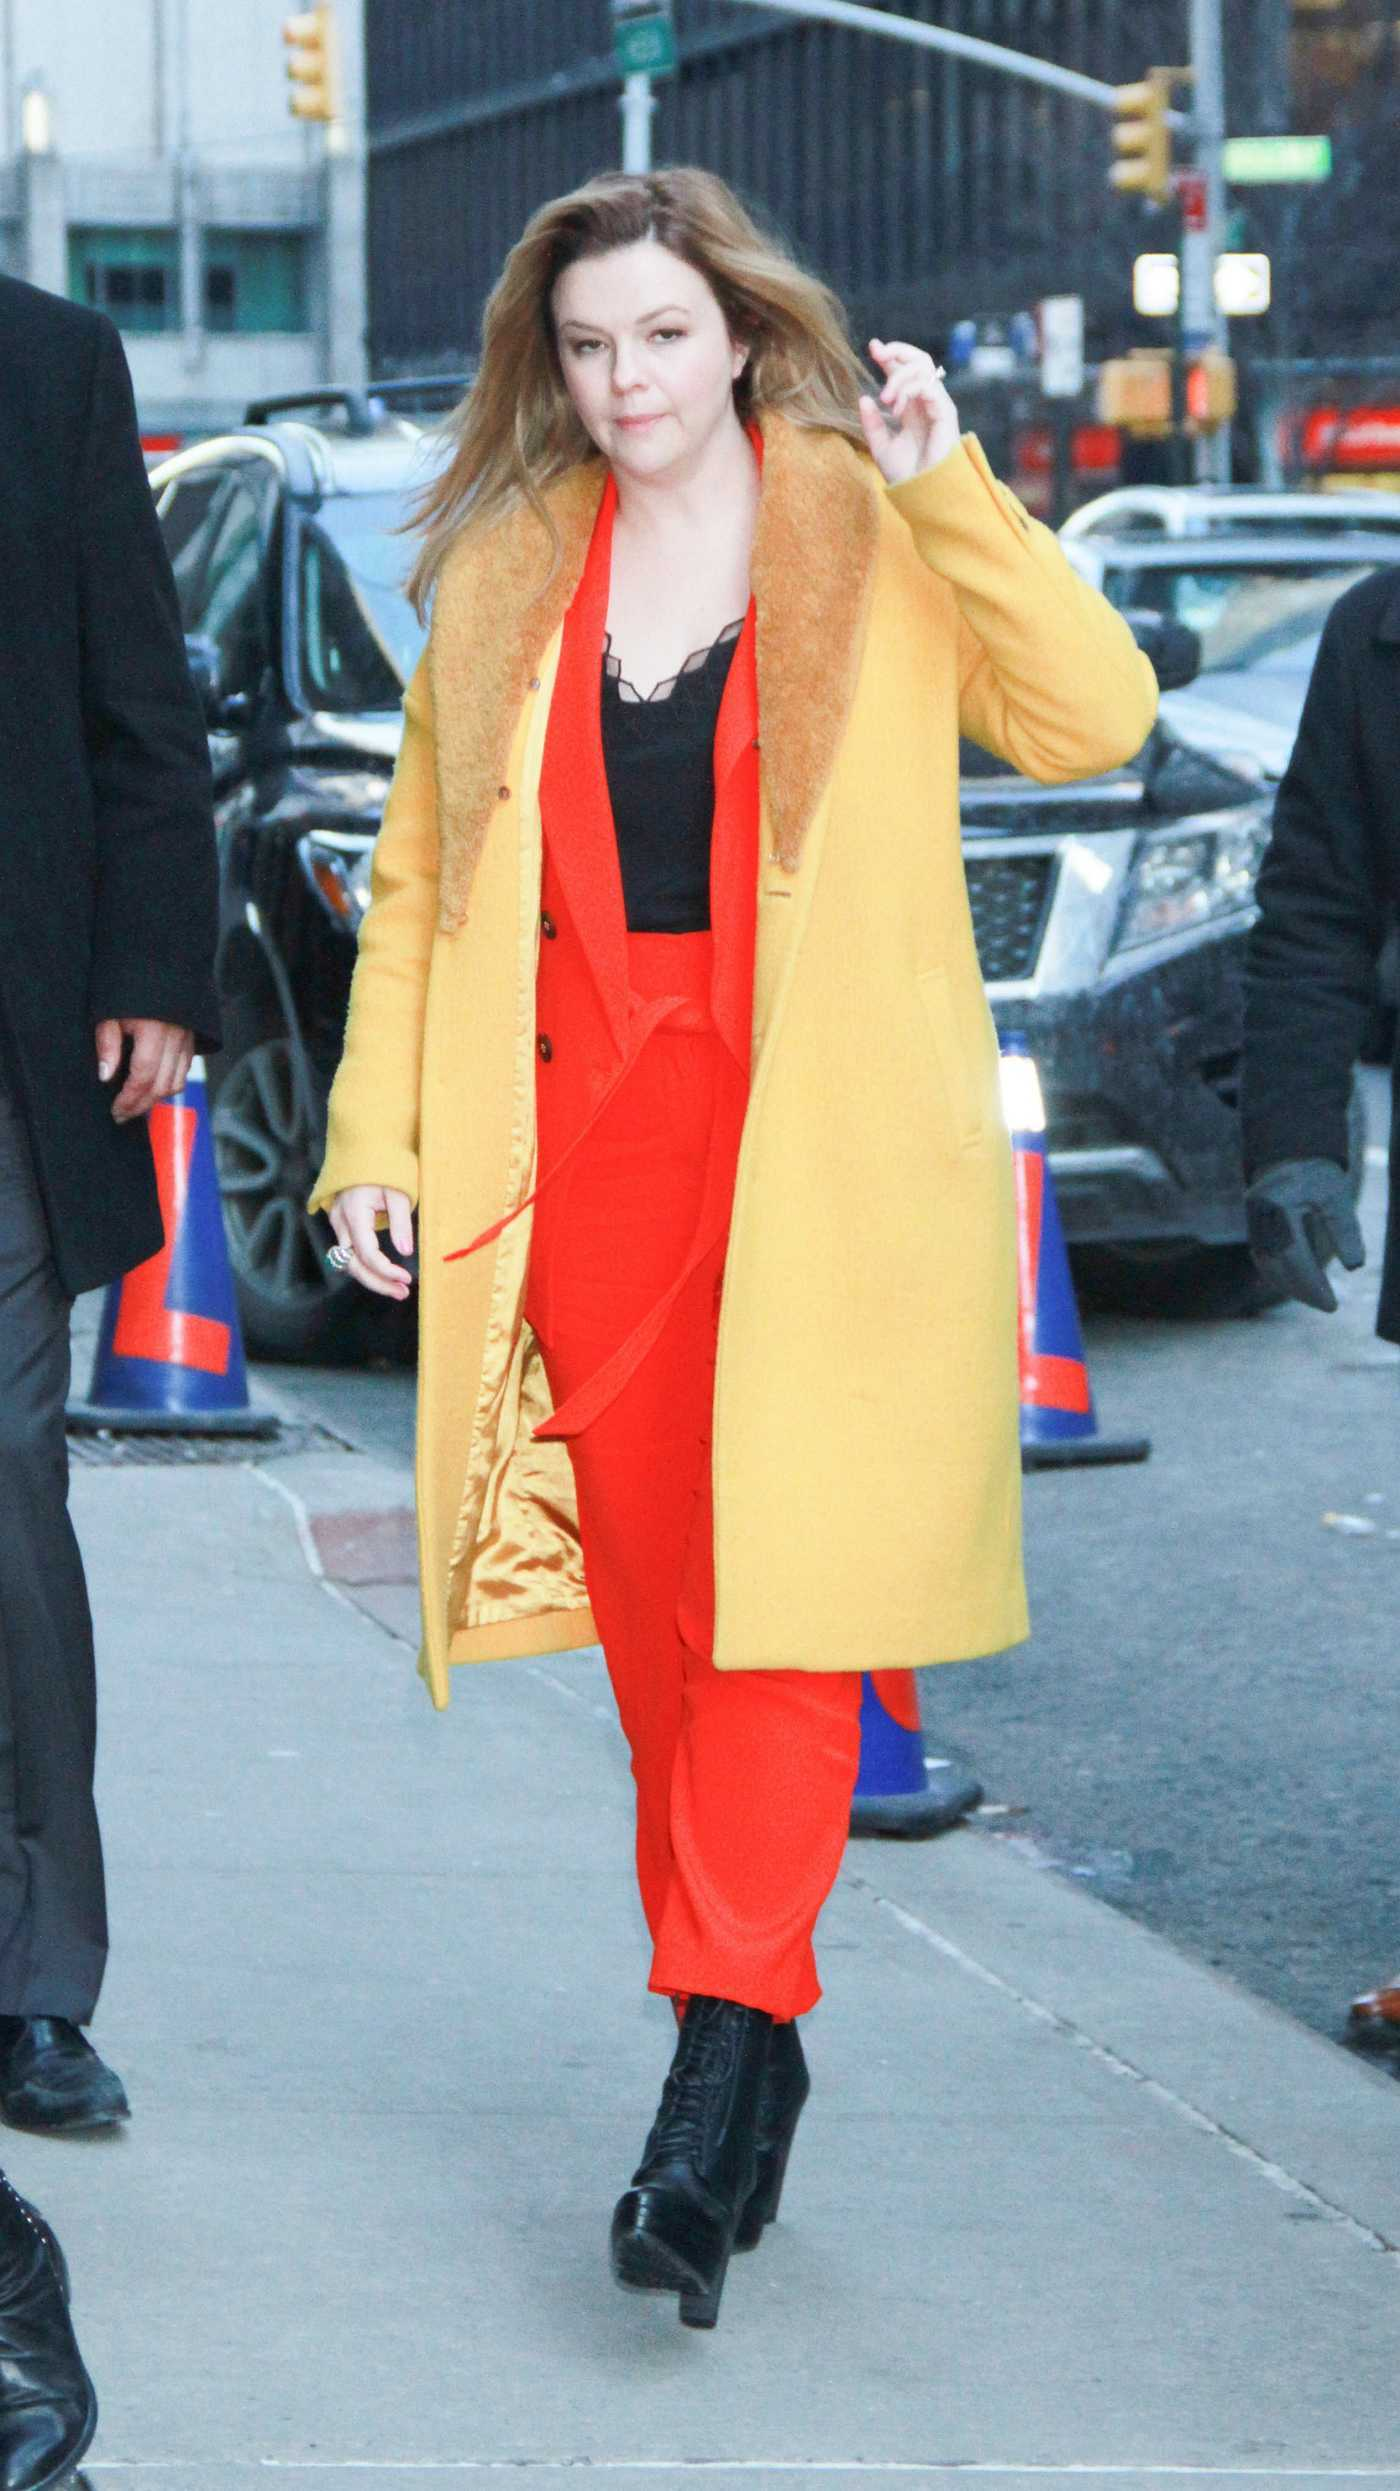 Amber Tamblyn Arrives at The Late Show with Stephen Colbert in New York 03/05/2019